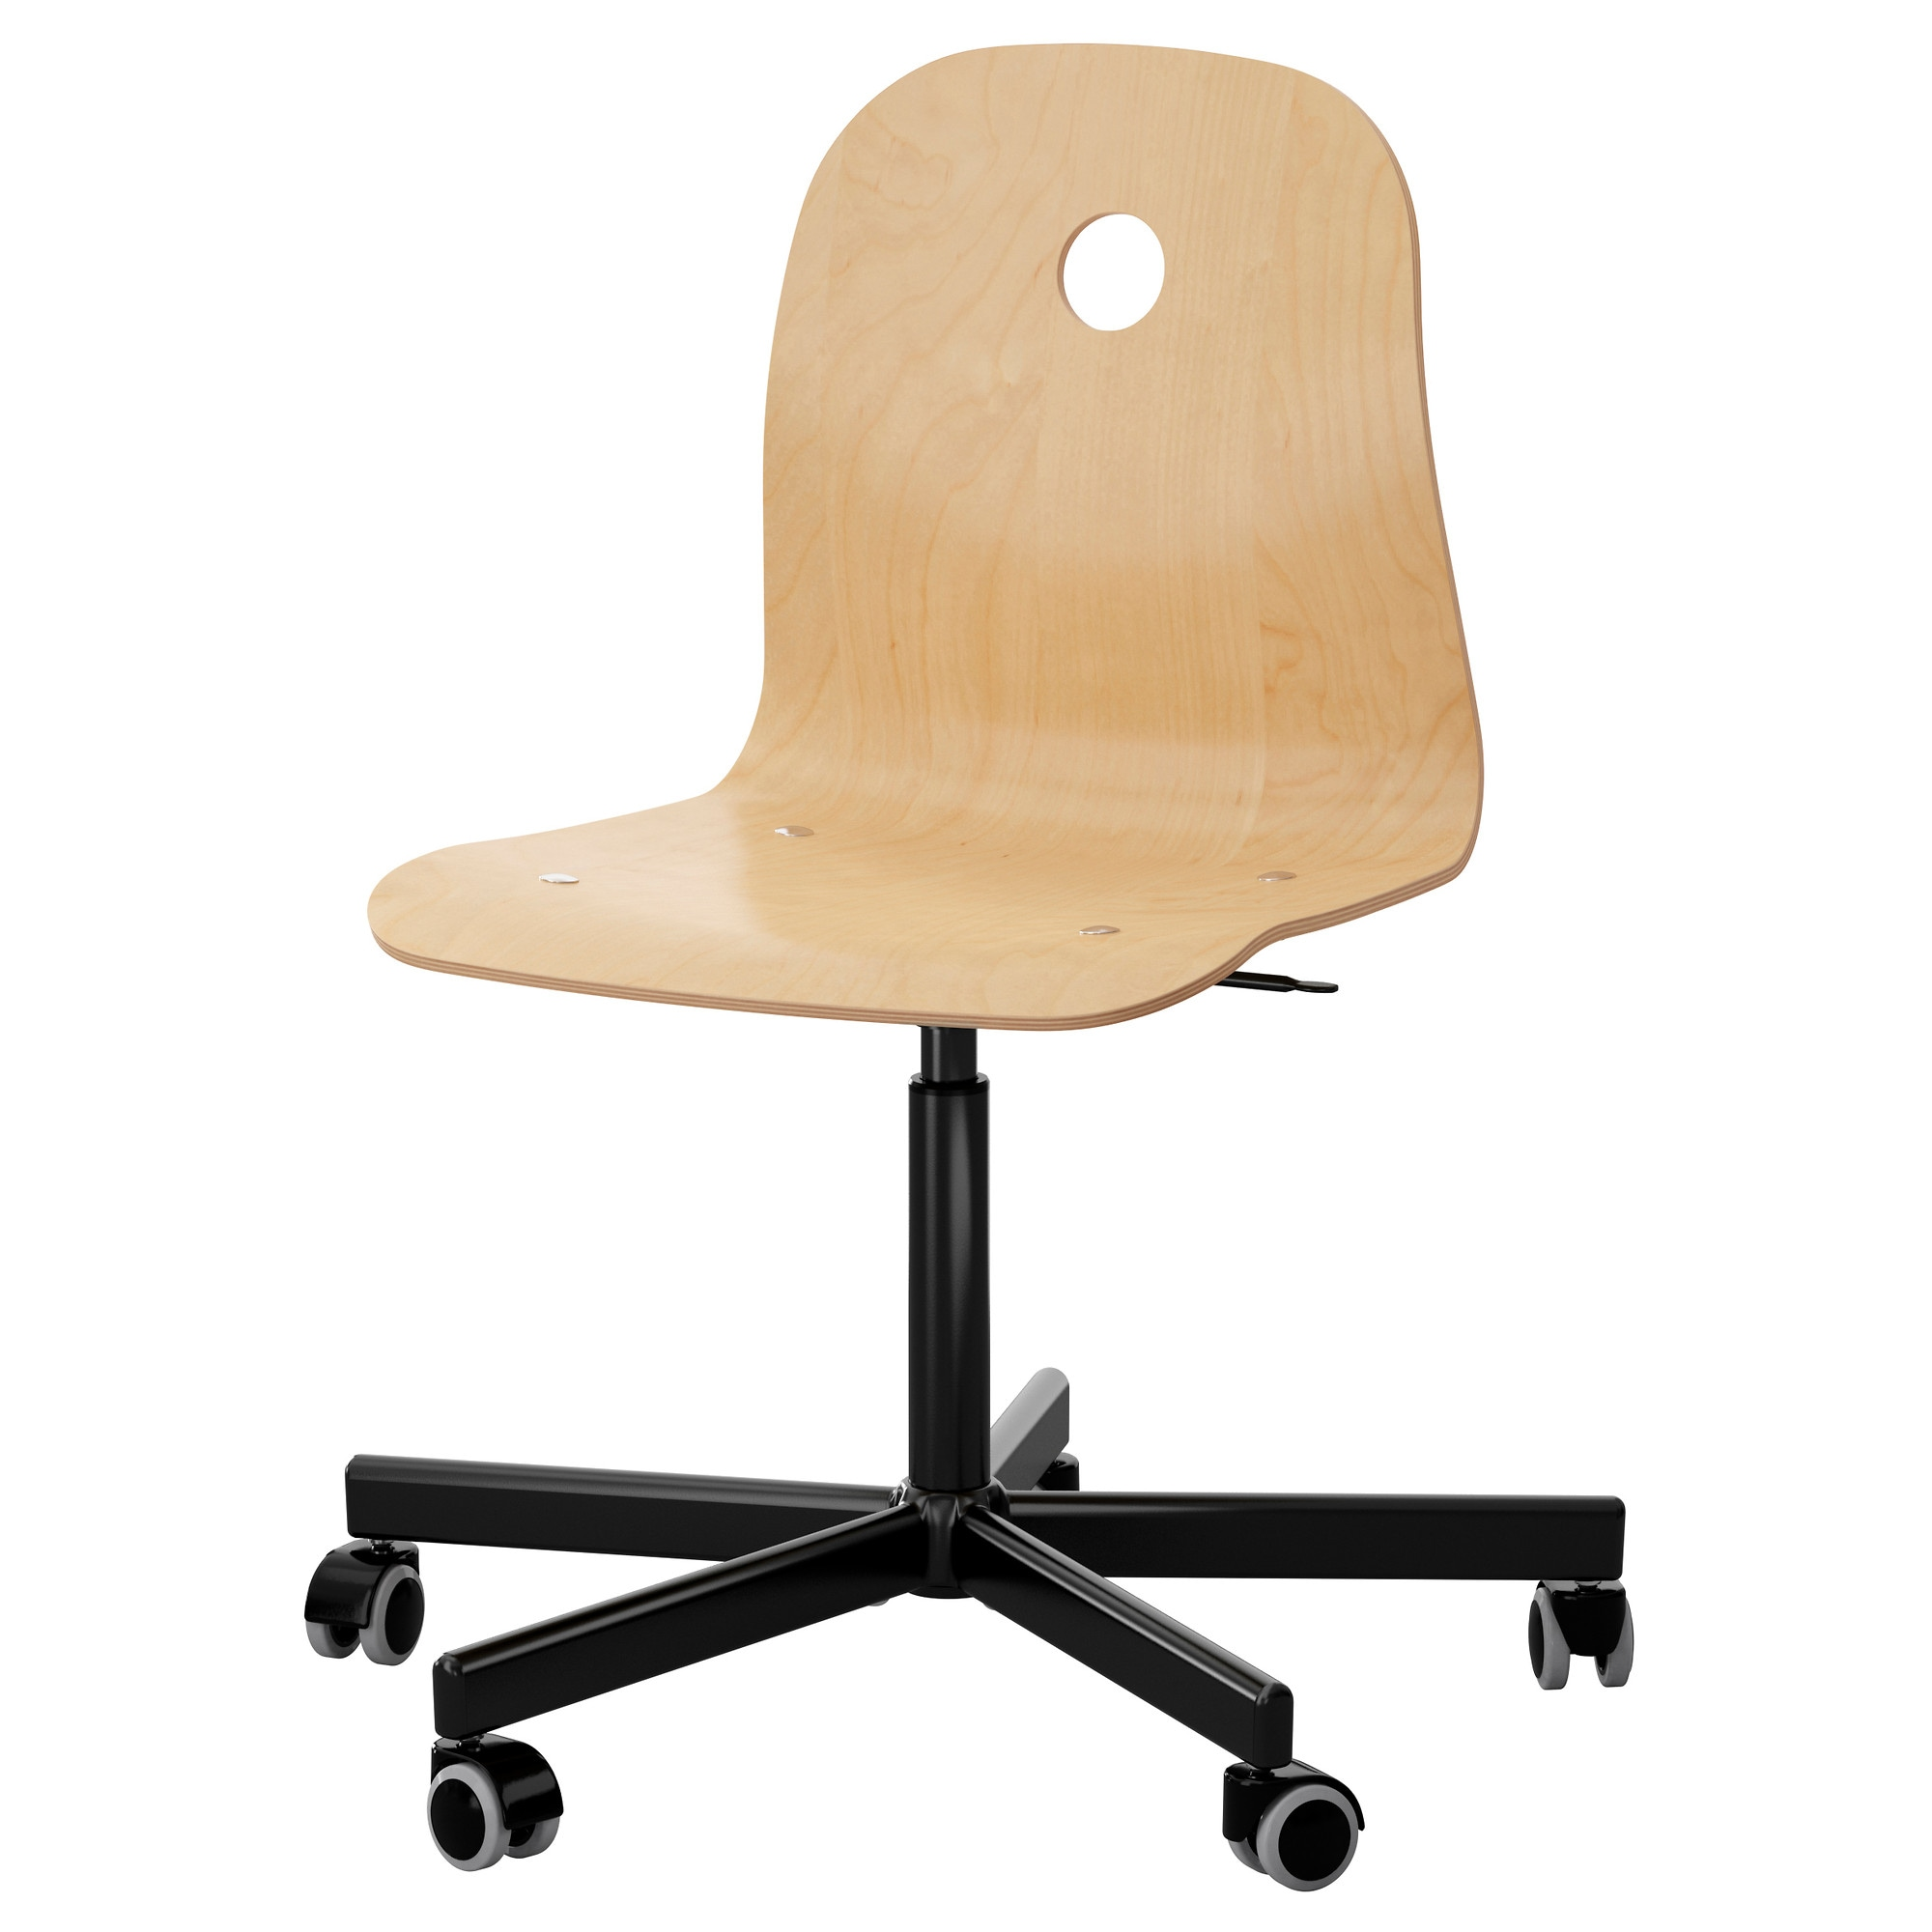 Inter IKEA Systems B.V. 1999 - 2018 | Privacy Policy | Responsible Disclosure.  sc 1 st  Ikea & VÅGSBERG / SPORREN Swivel chair - birch veneer/black - IKEA